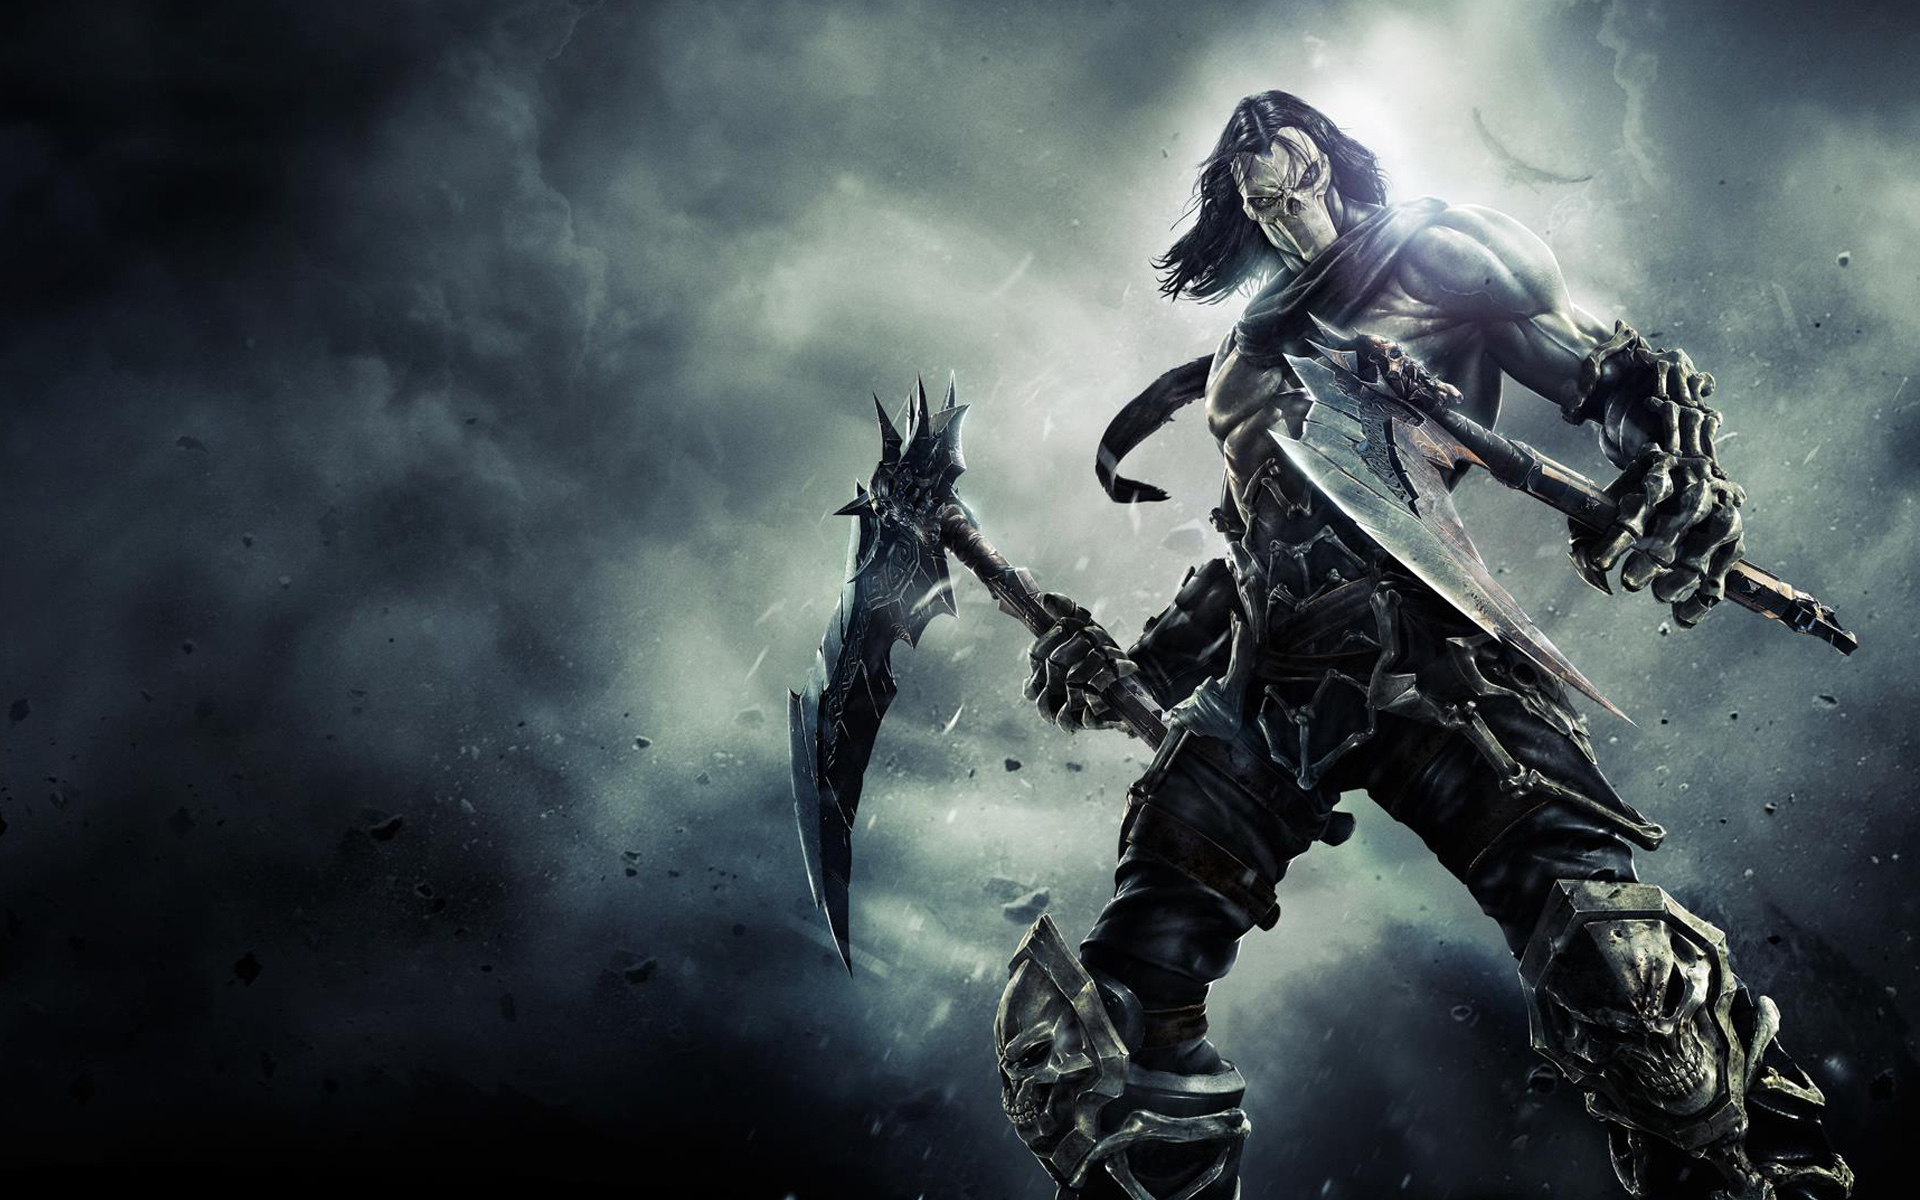 Death Darksiders 2 Game Wallpapers HD Wallpapers 1920x1200